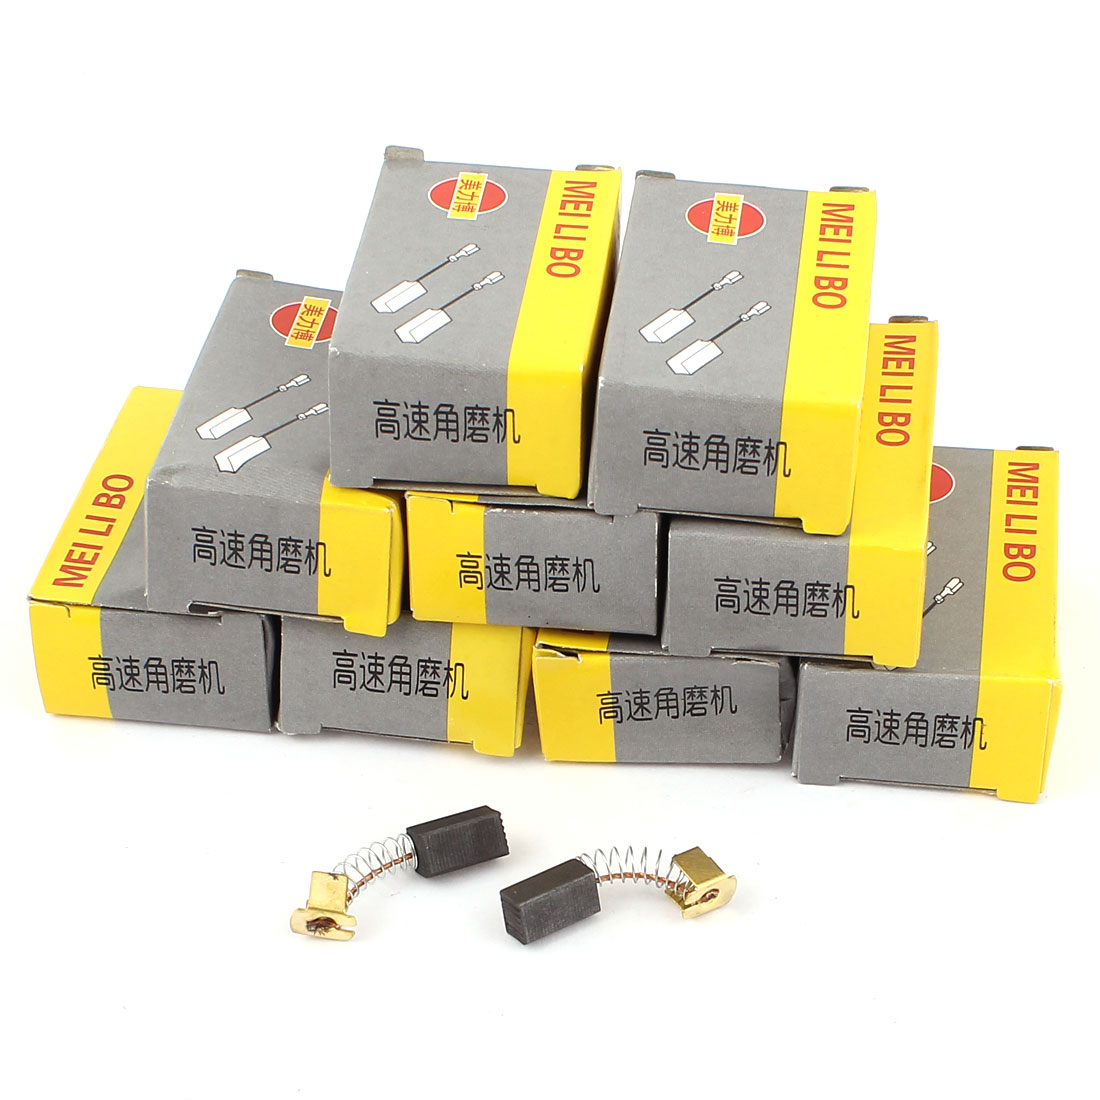 10Pairs Electric Power Tool Spring Motor Carbon Brush 12x6x6mm for Angle Grinder